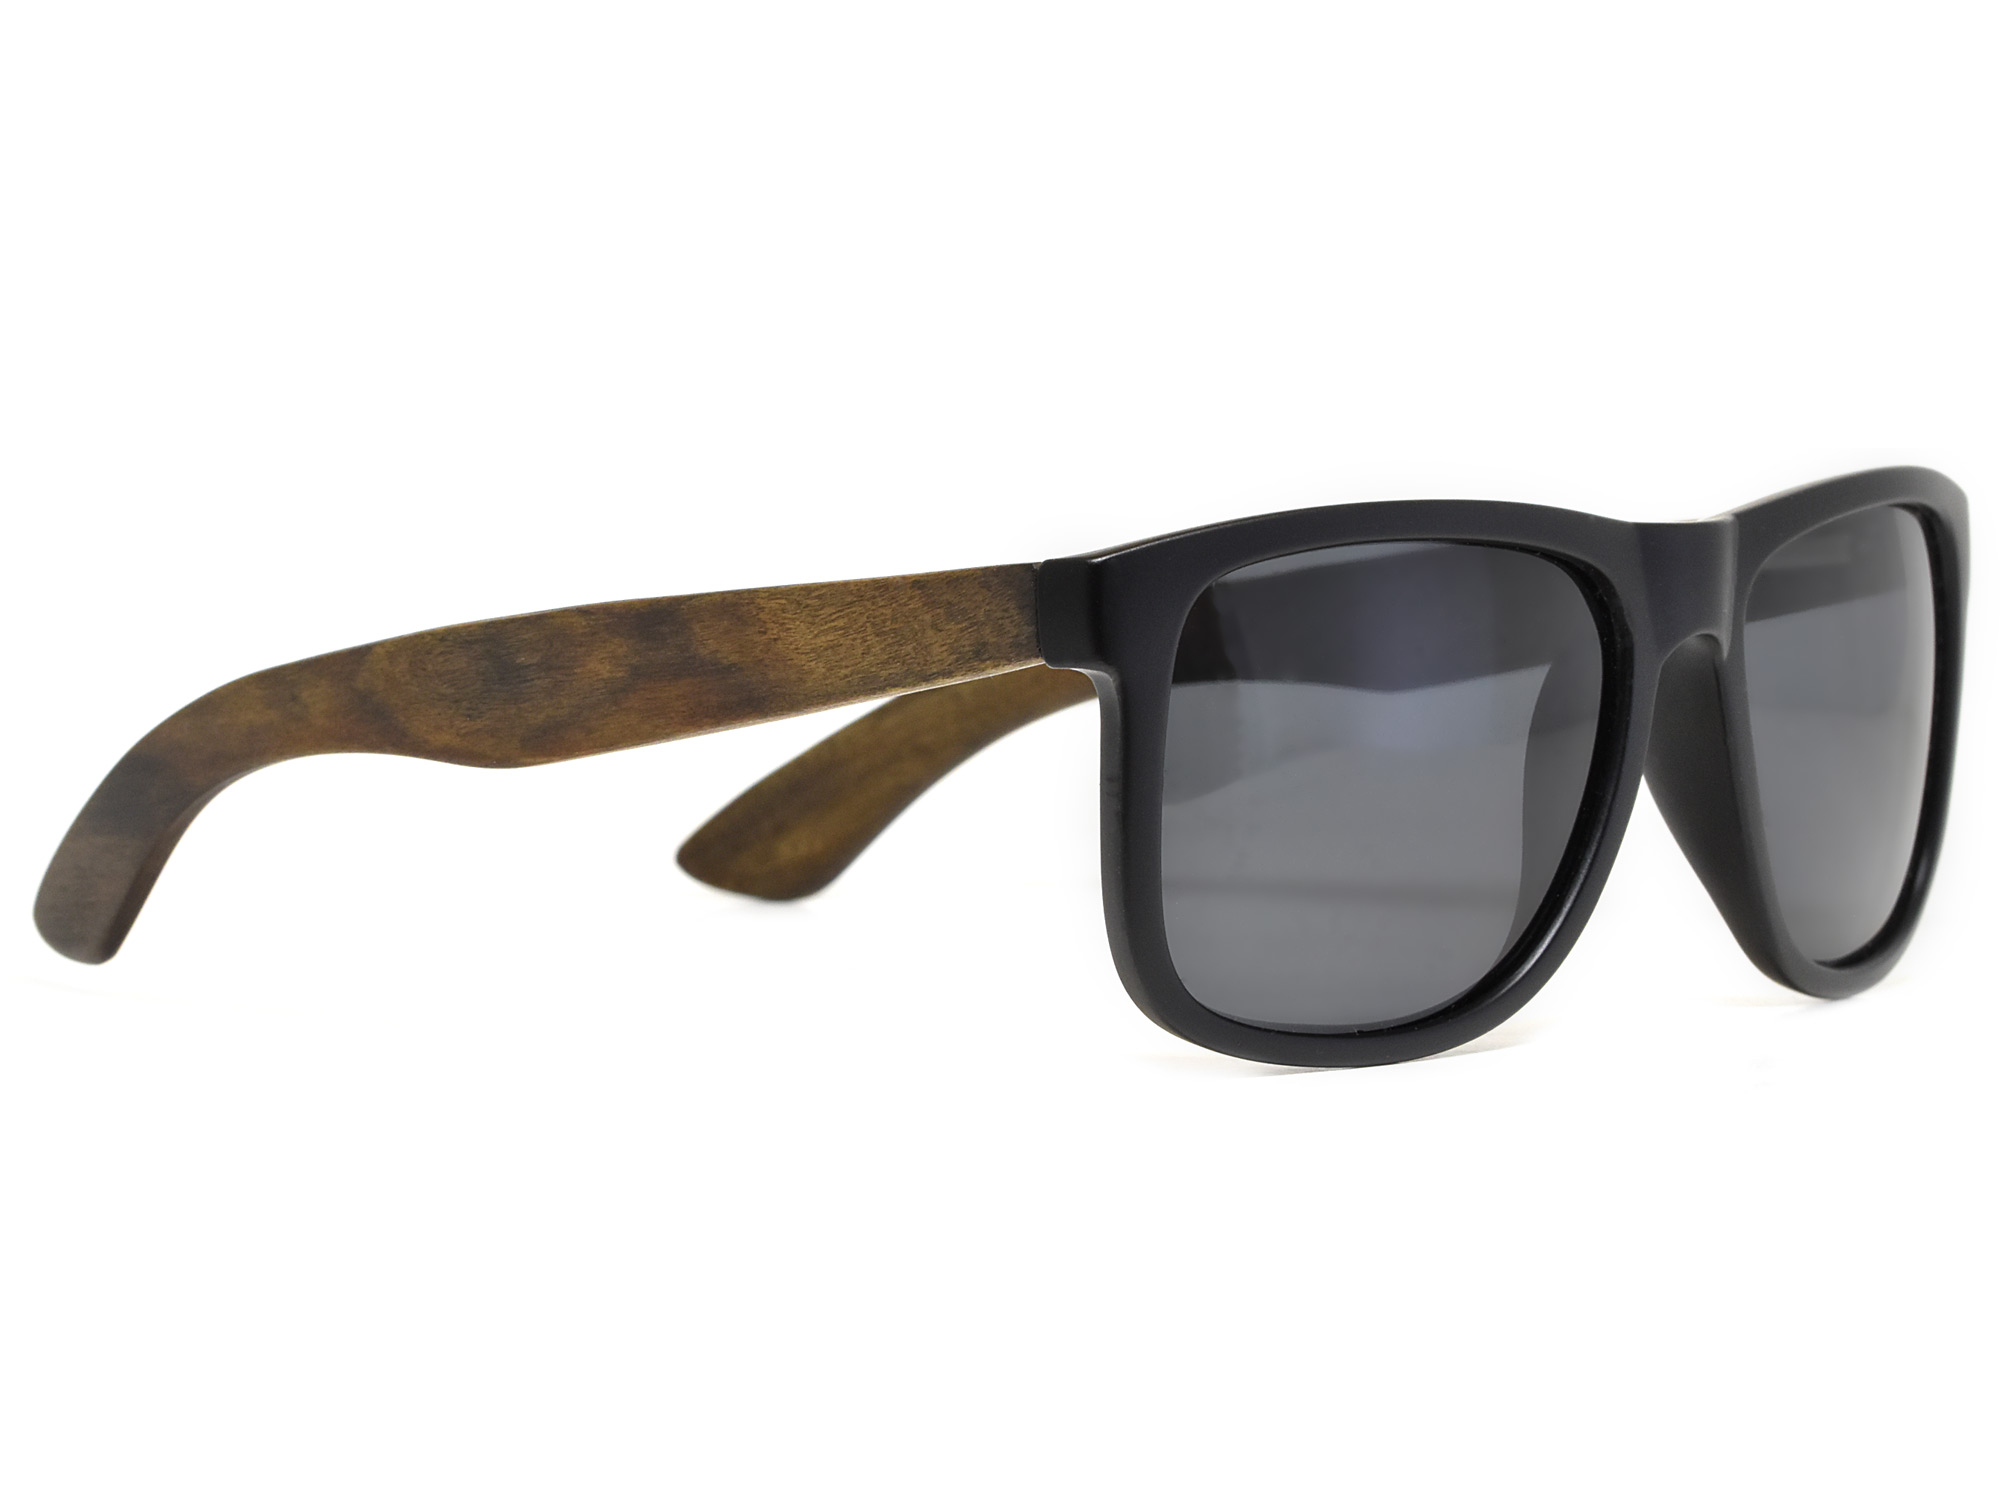 Square ebony wood sunglasses with black polarized lenses right